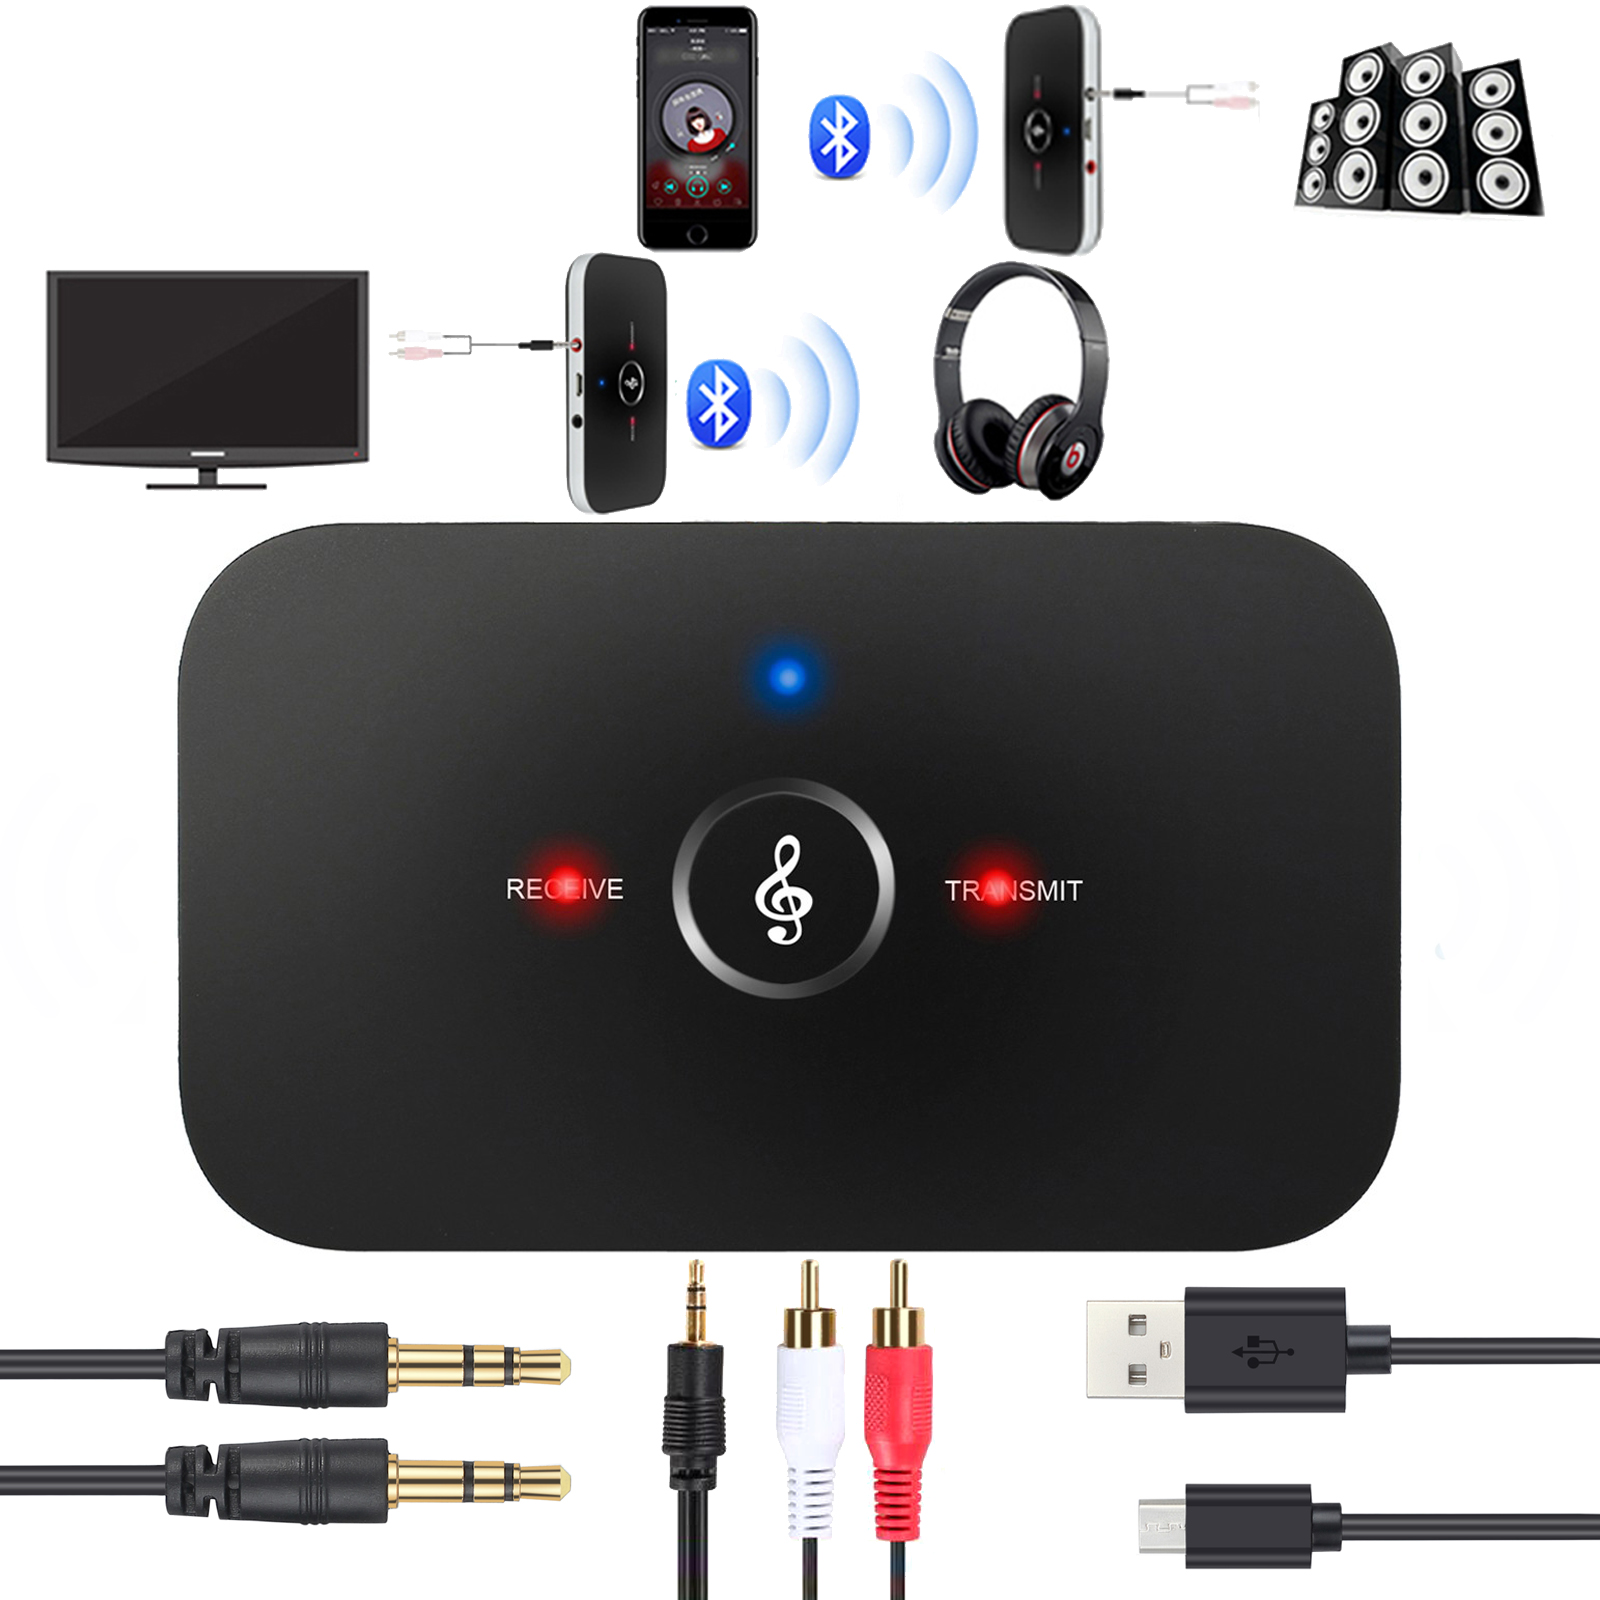 ESYNIC Wireless Bluetooth Transmitter Receiver Kit 2 in 1 Wireless Stereo Audio Adapter Car Kit A2DP AUX Stereo Audio Adapter with 3.5mm Stereo Audio Port for Headset TV PC Phone Speaker